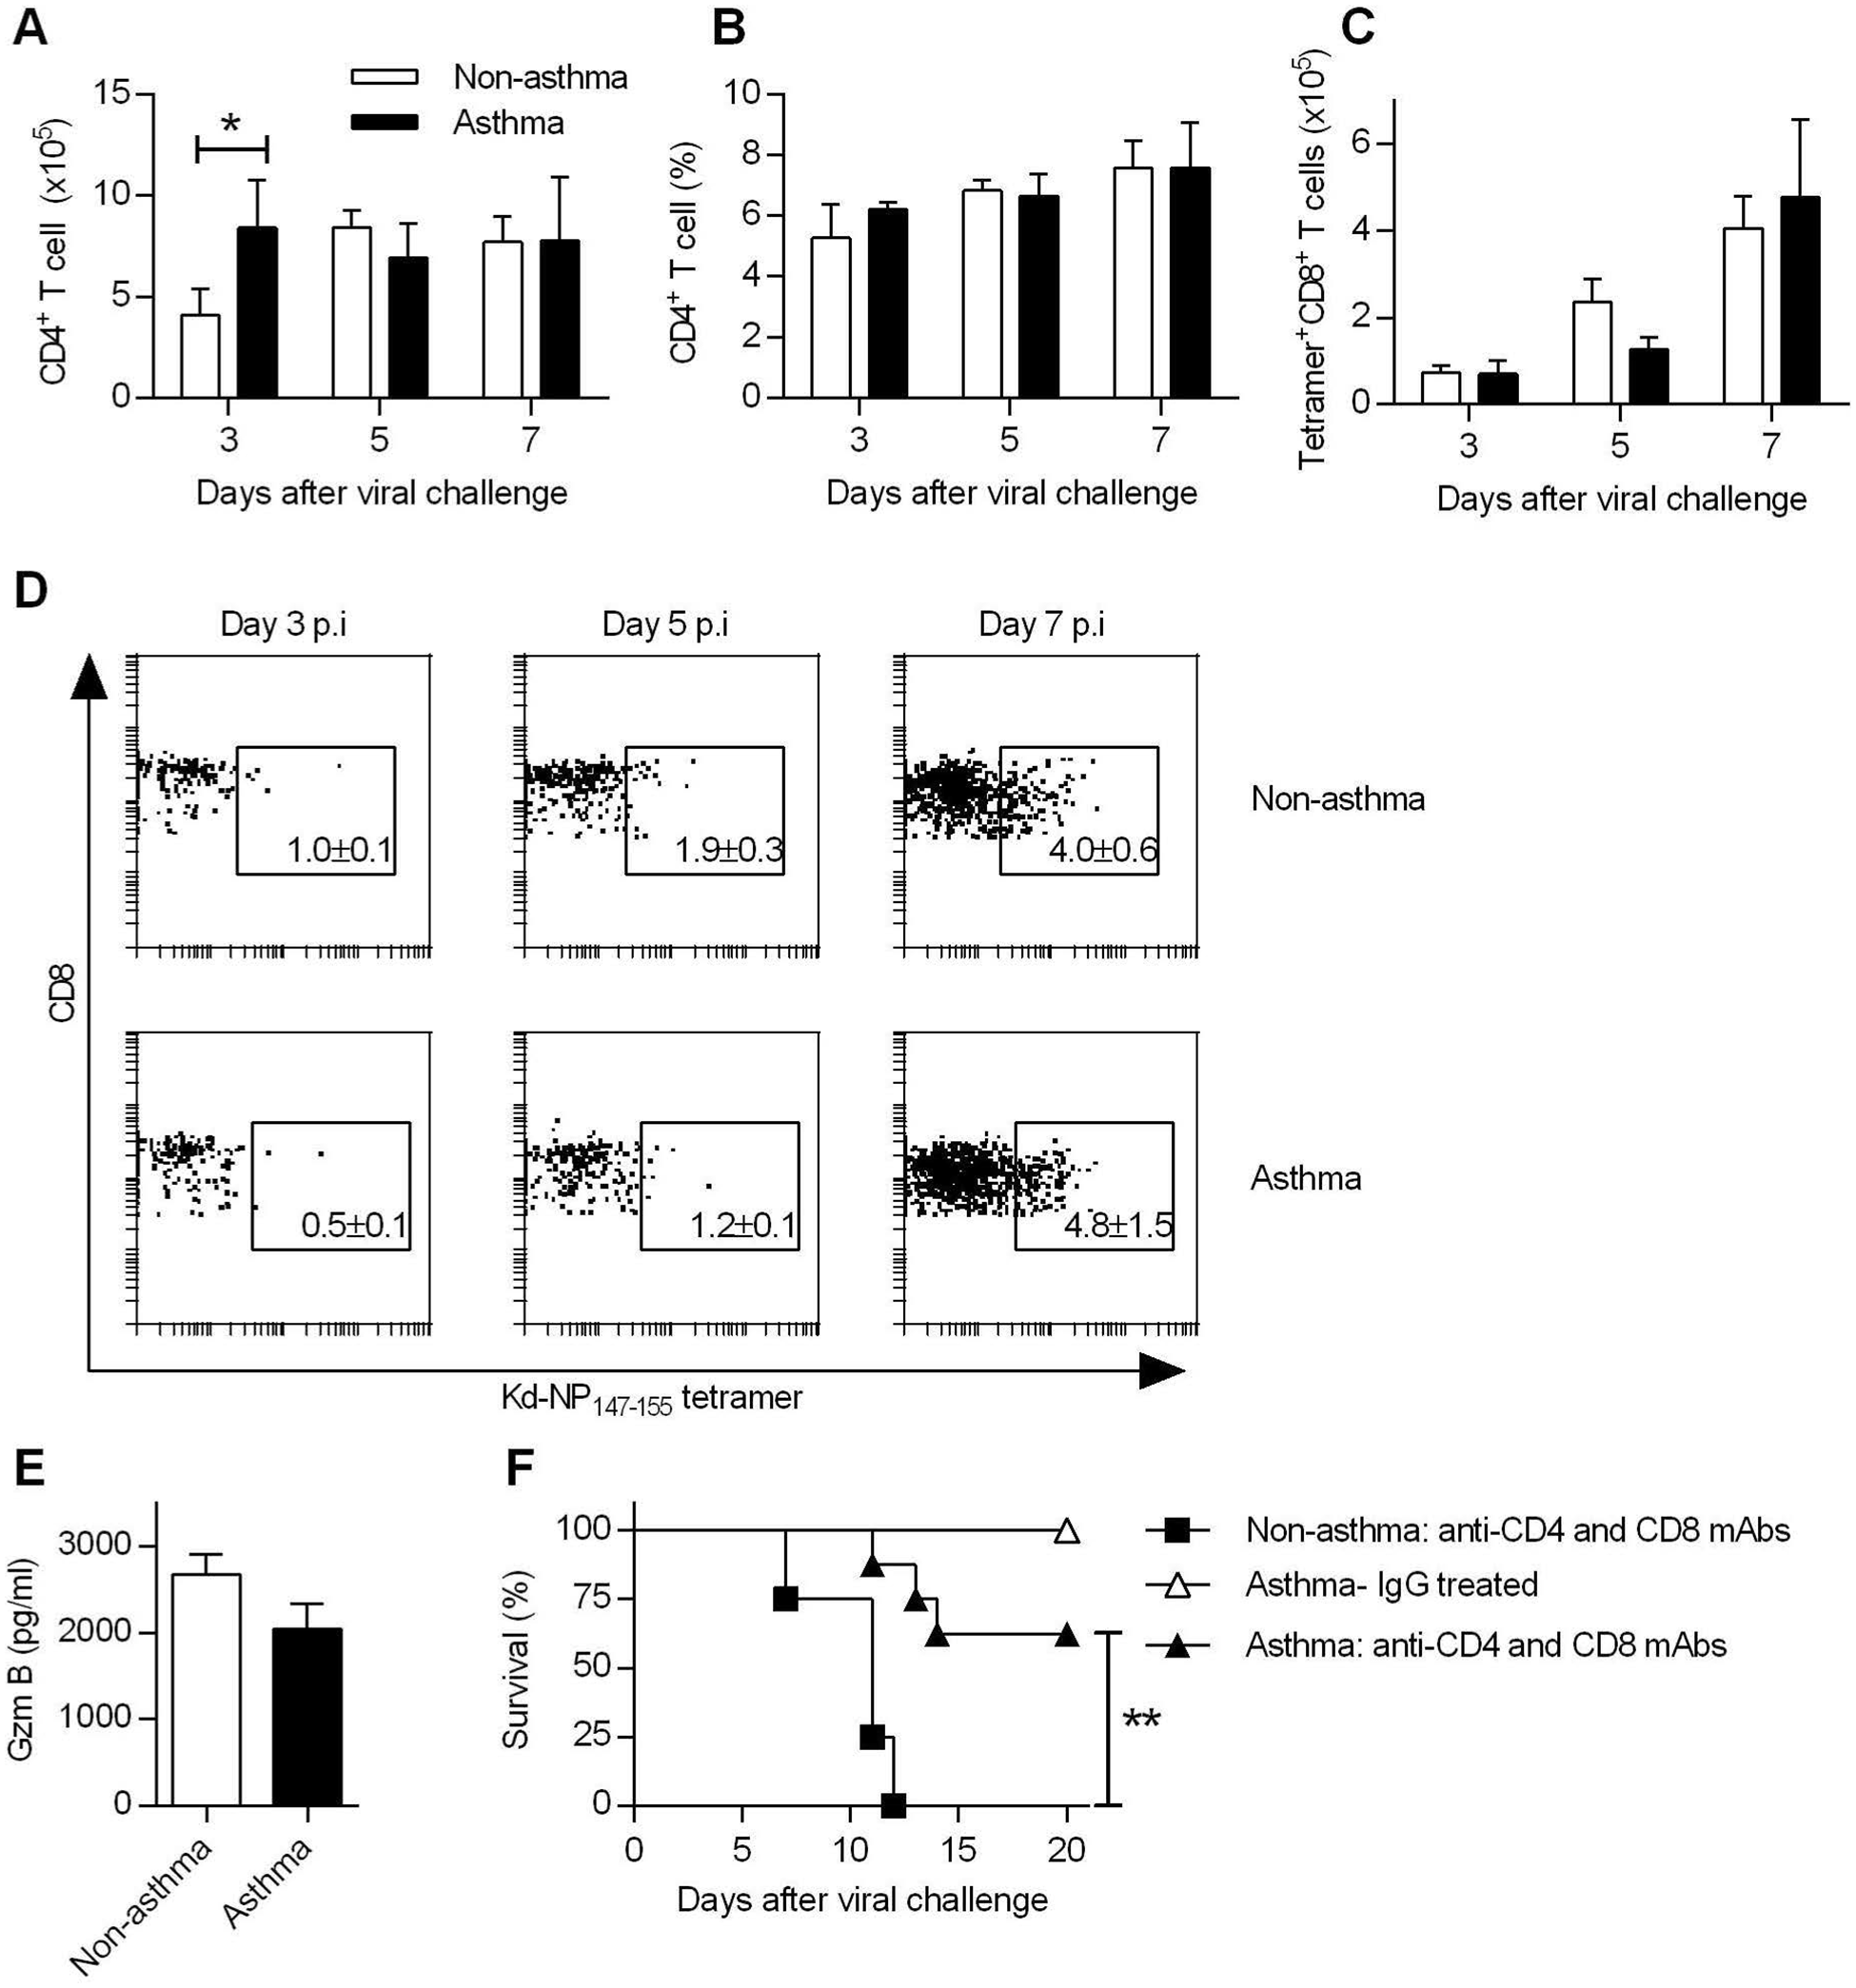 Increased resistance in asthmatic mice is T cell independent.